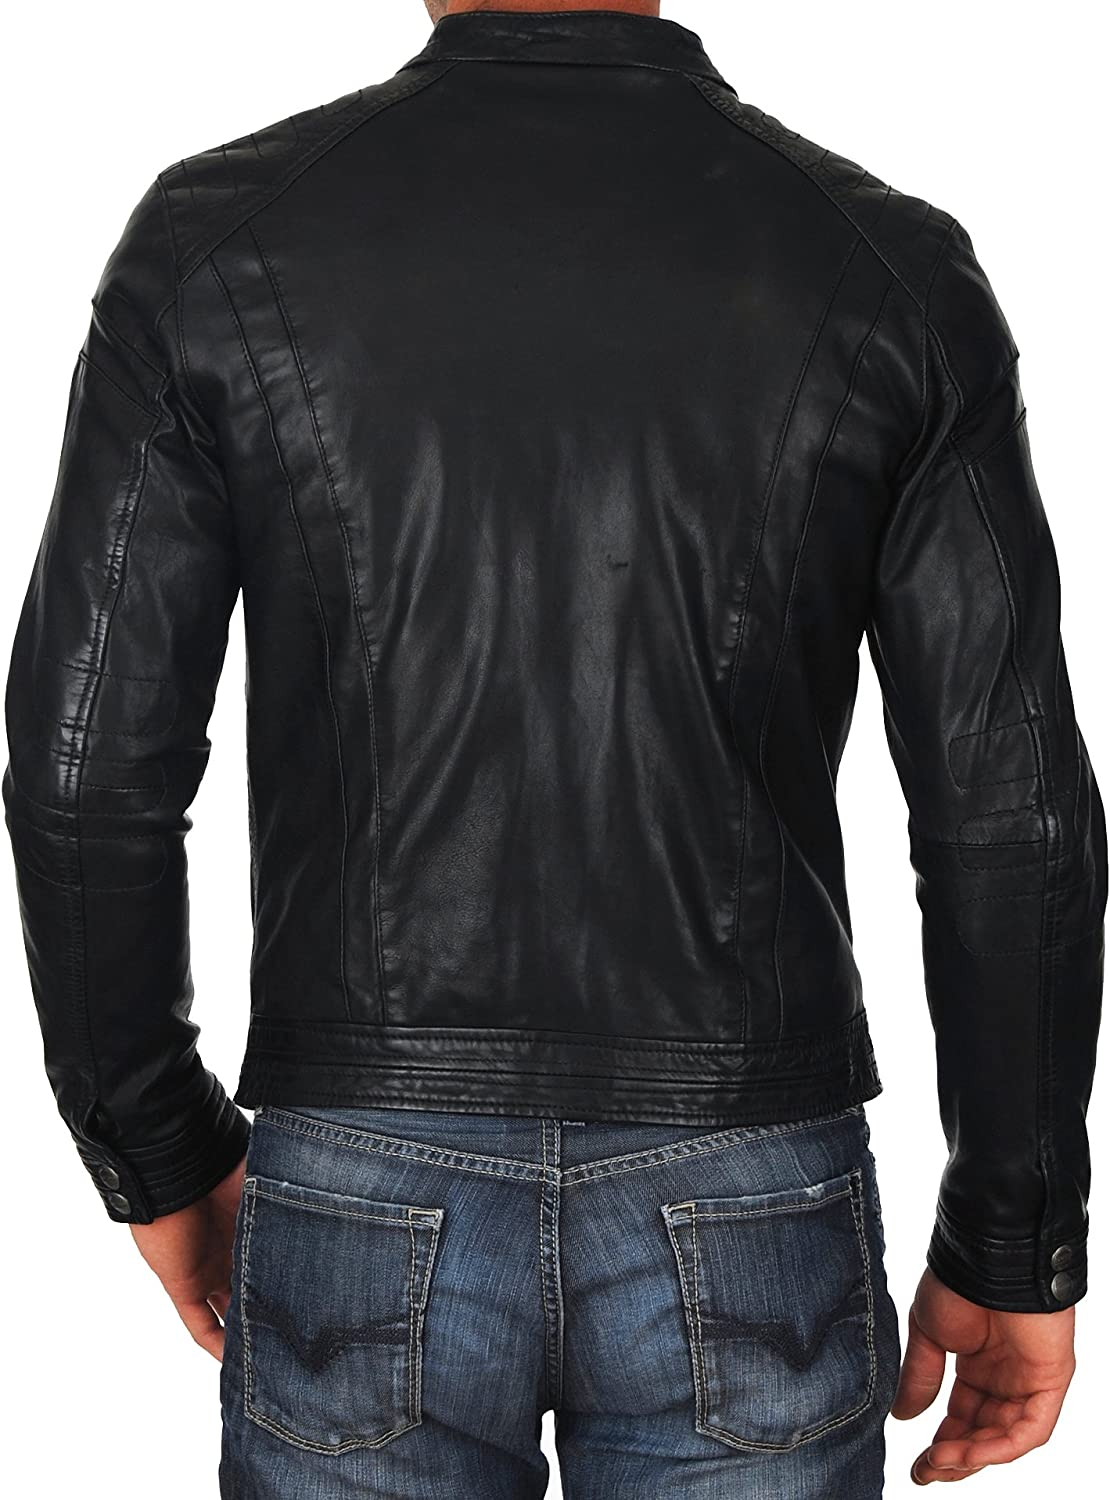 Kingdom Leather Mens Genuine Cow Leather Jacket Slim Fit Biker Motorcycle Jacket XC208